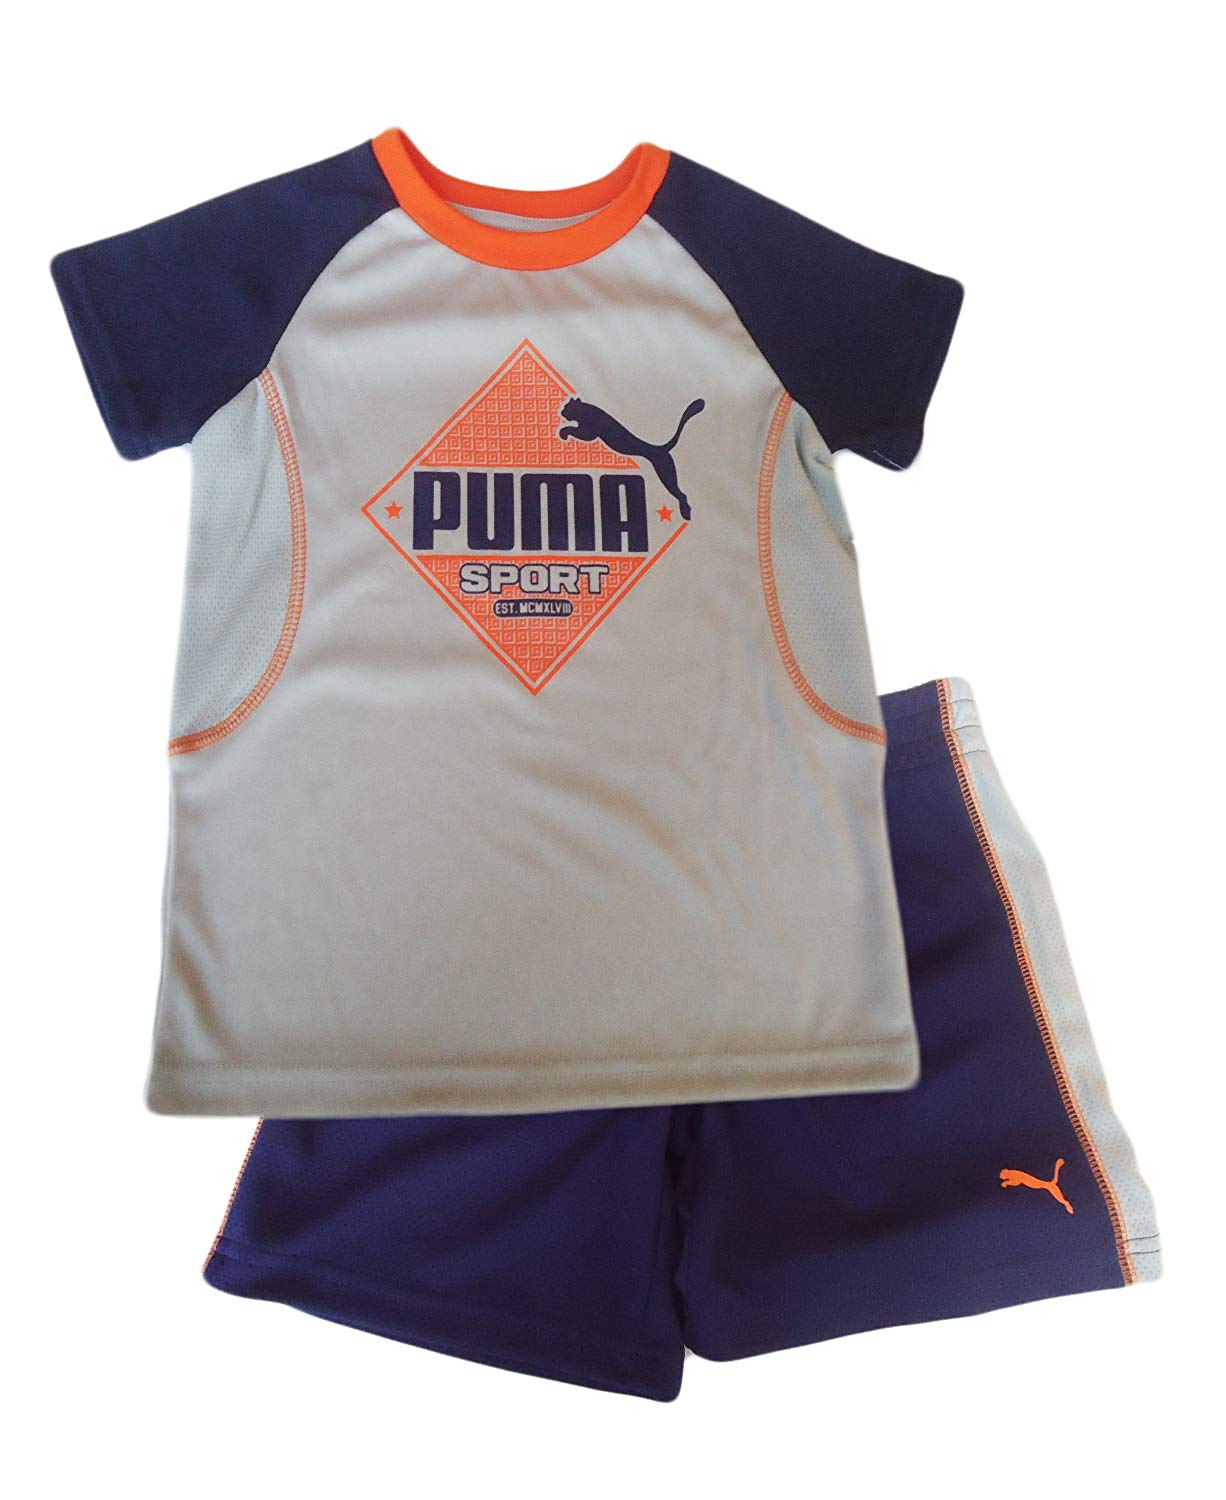 Prisión lema un poco  Toddler Boys: PUMA Boys Active 2PC Set - Baby Clothes, Baby Clothing, Baby  Boy Clothes, Baby Girl Clothes, cheap name brand clothes for kids,toddler  name brand clothes,cheap name brand baby clothes,toddler boy